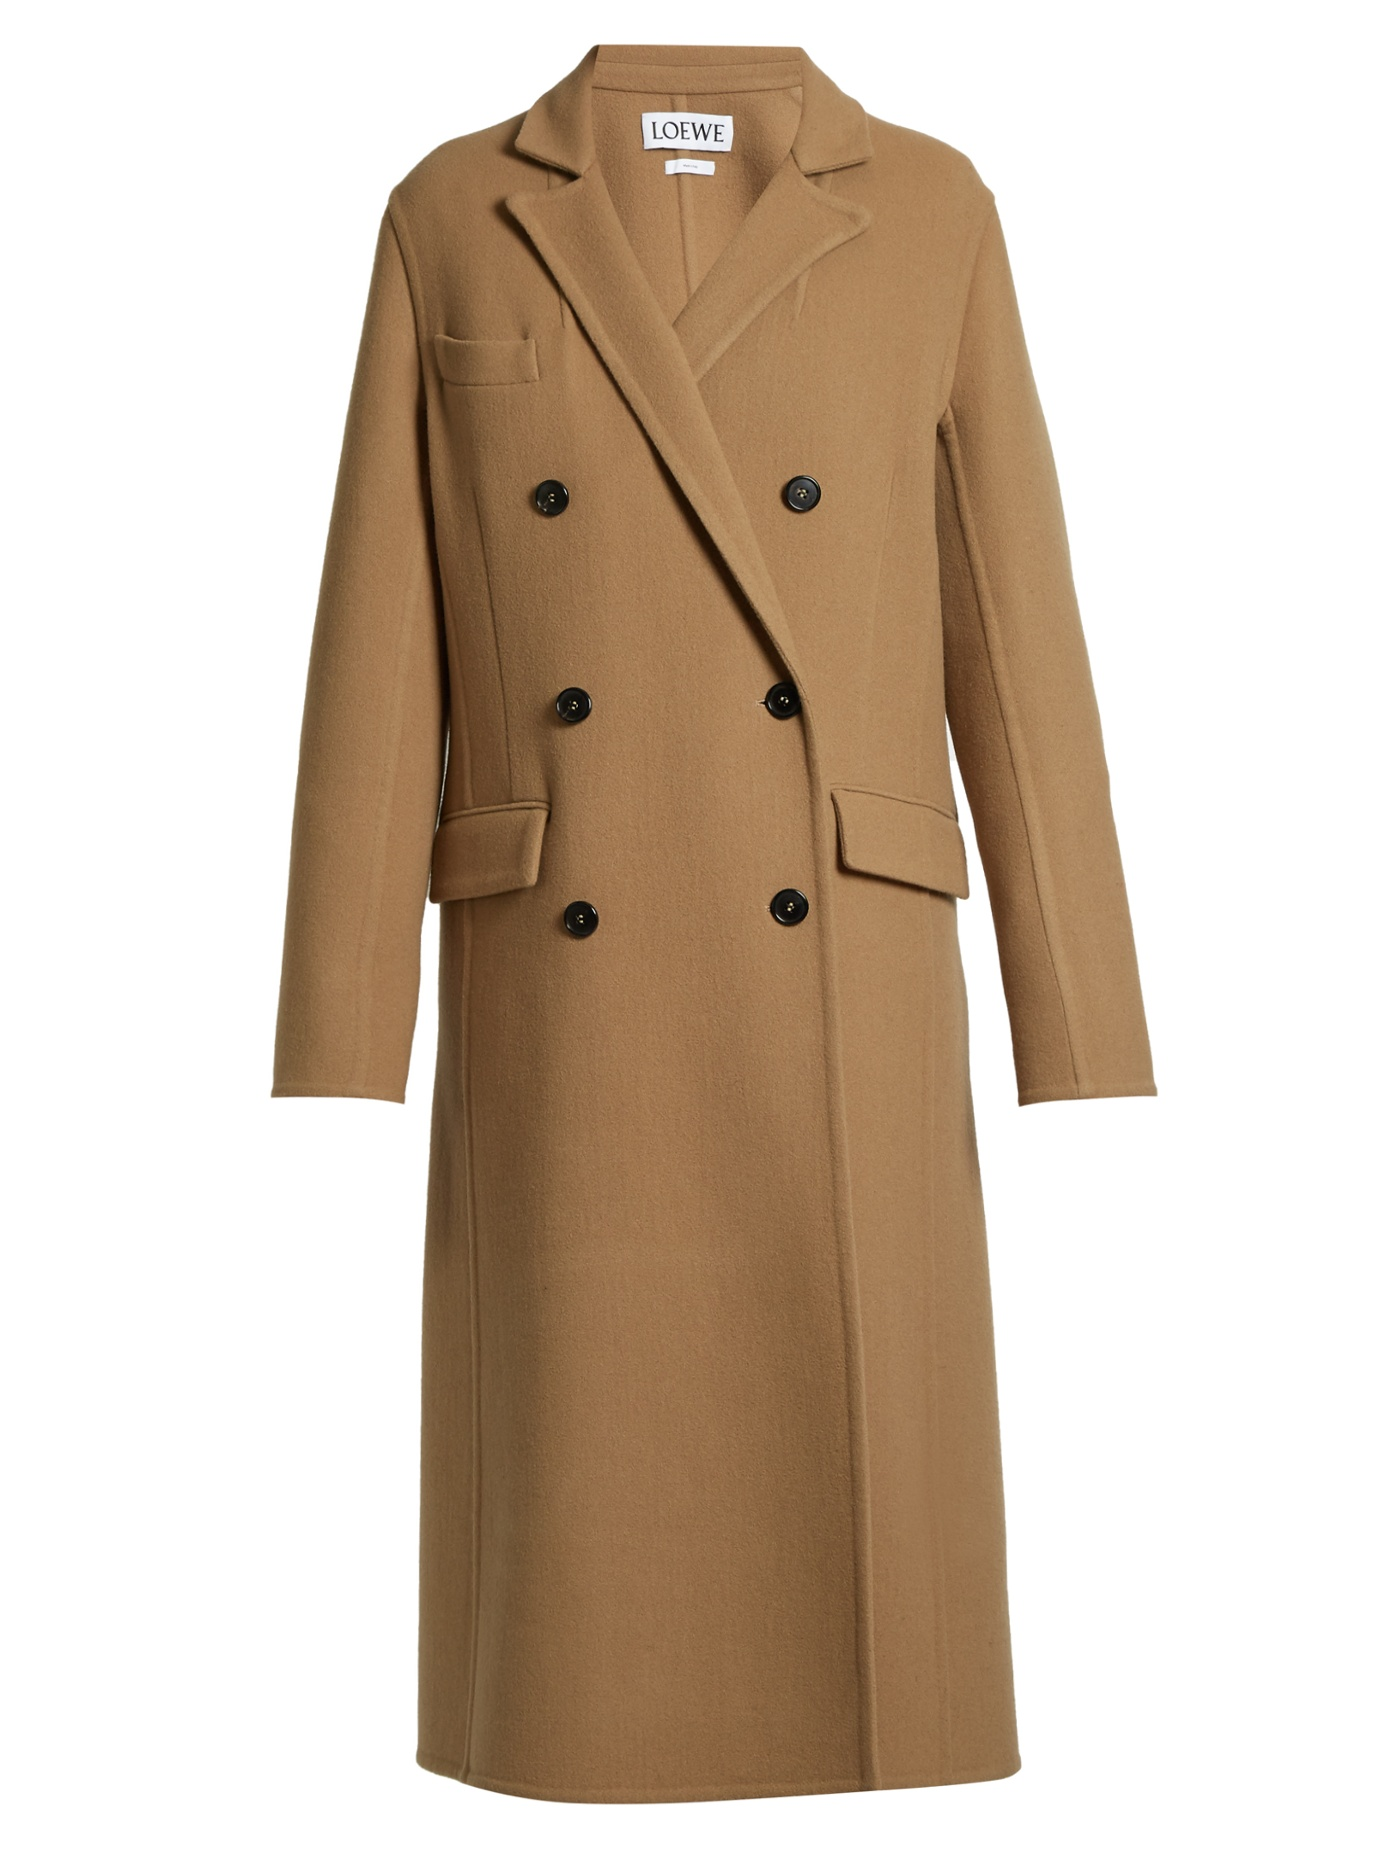 Loewe - My search for the perfect camel coat is officially over